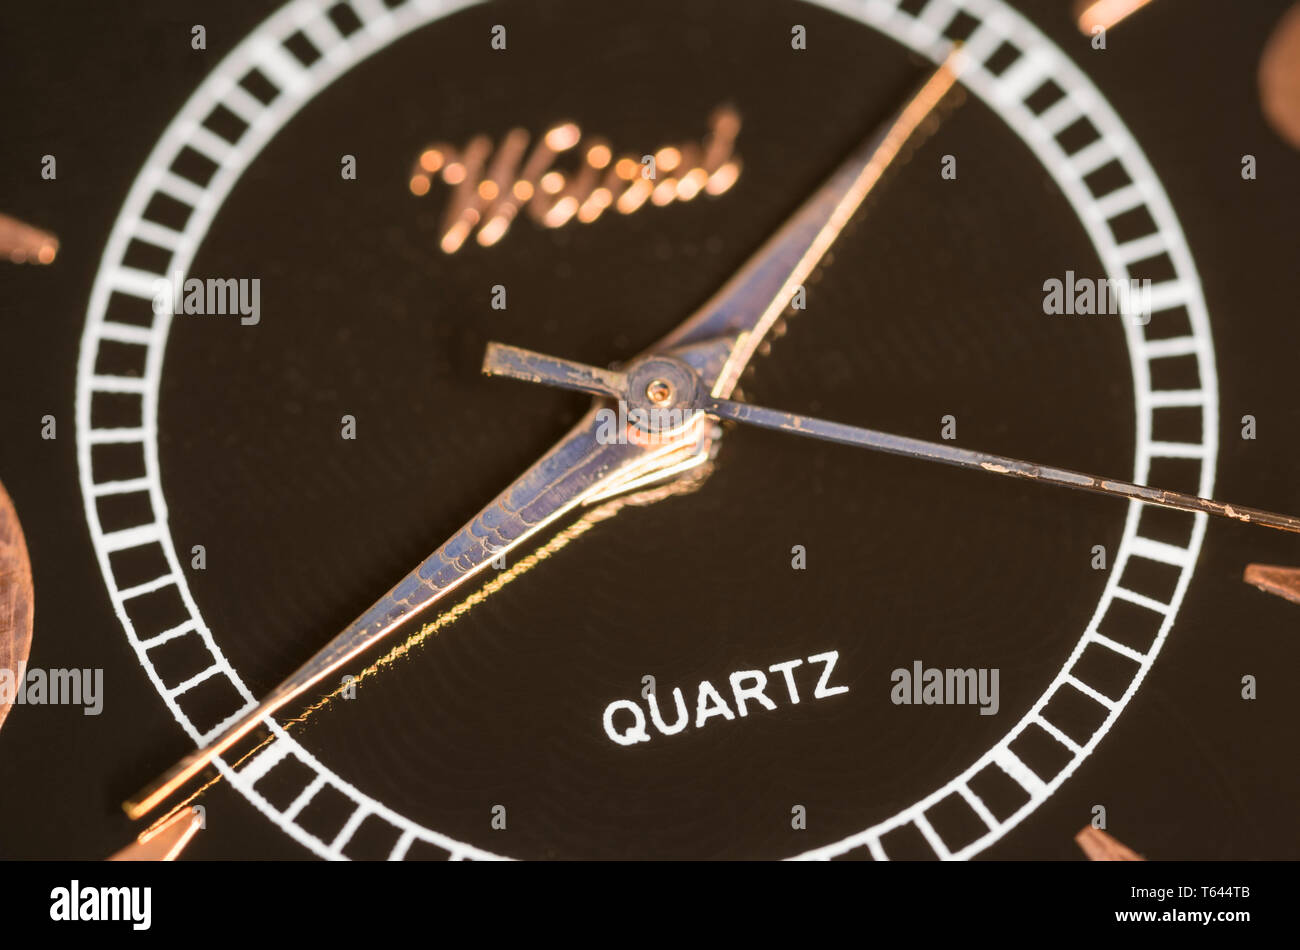 Quartz logo on a watch or clock face using a quartz mechanism showing hour, minute and second hands. - Stock Image